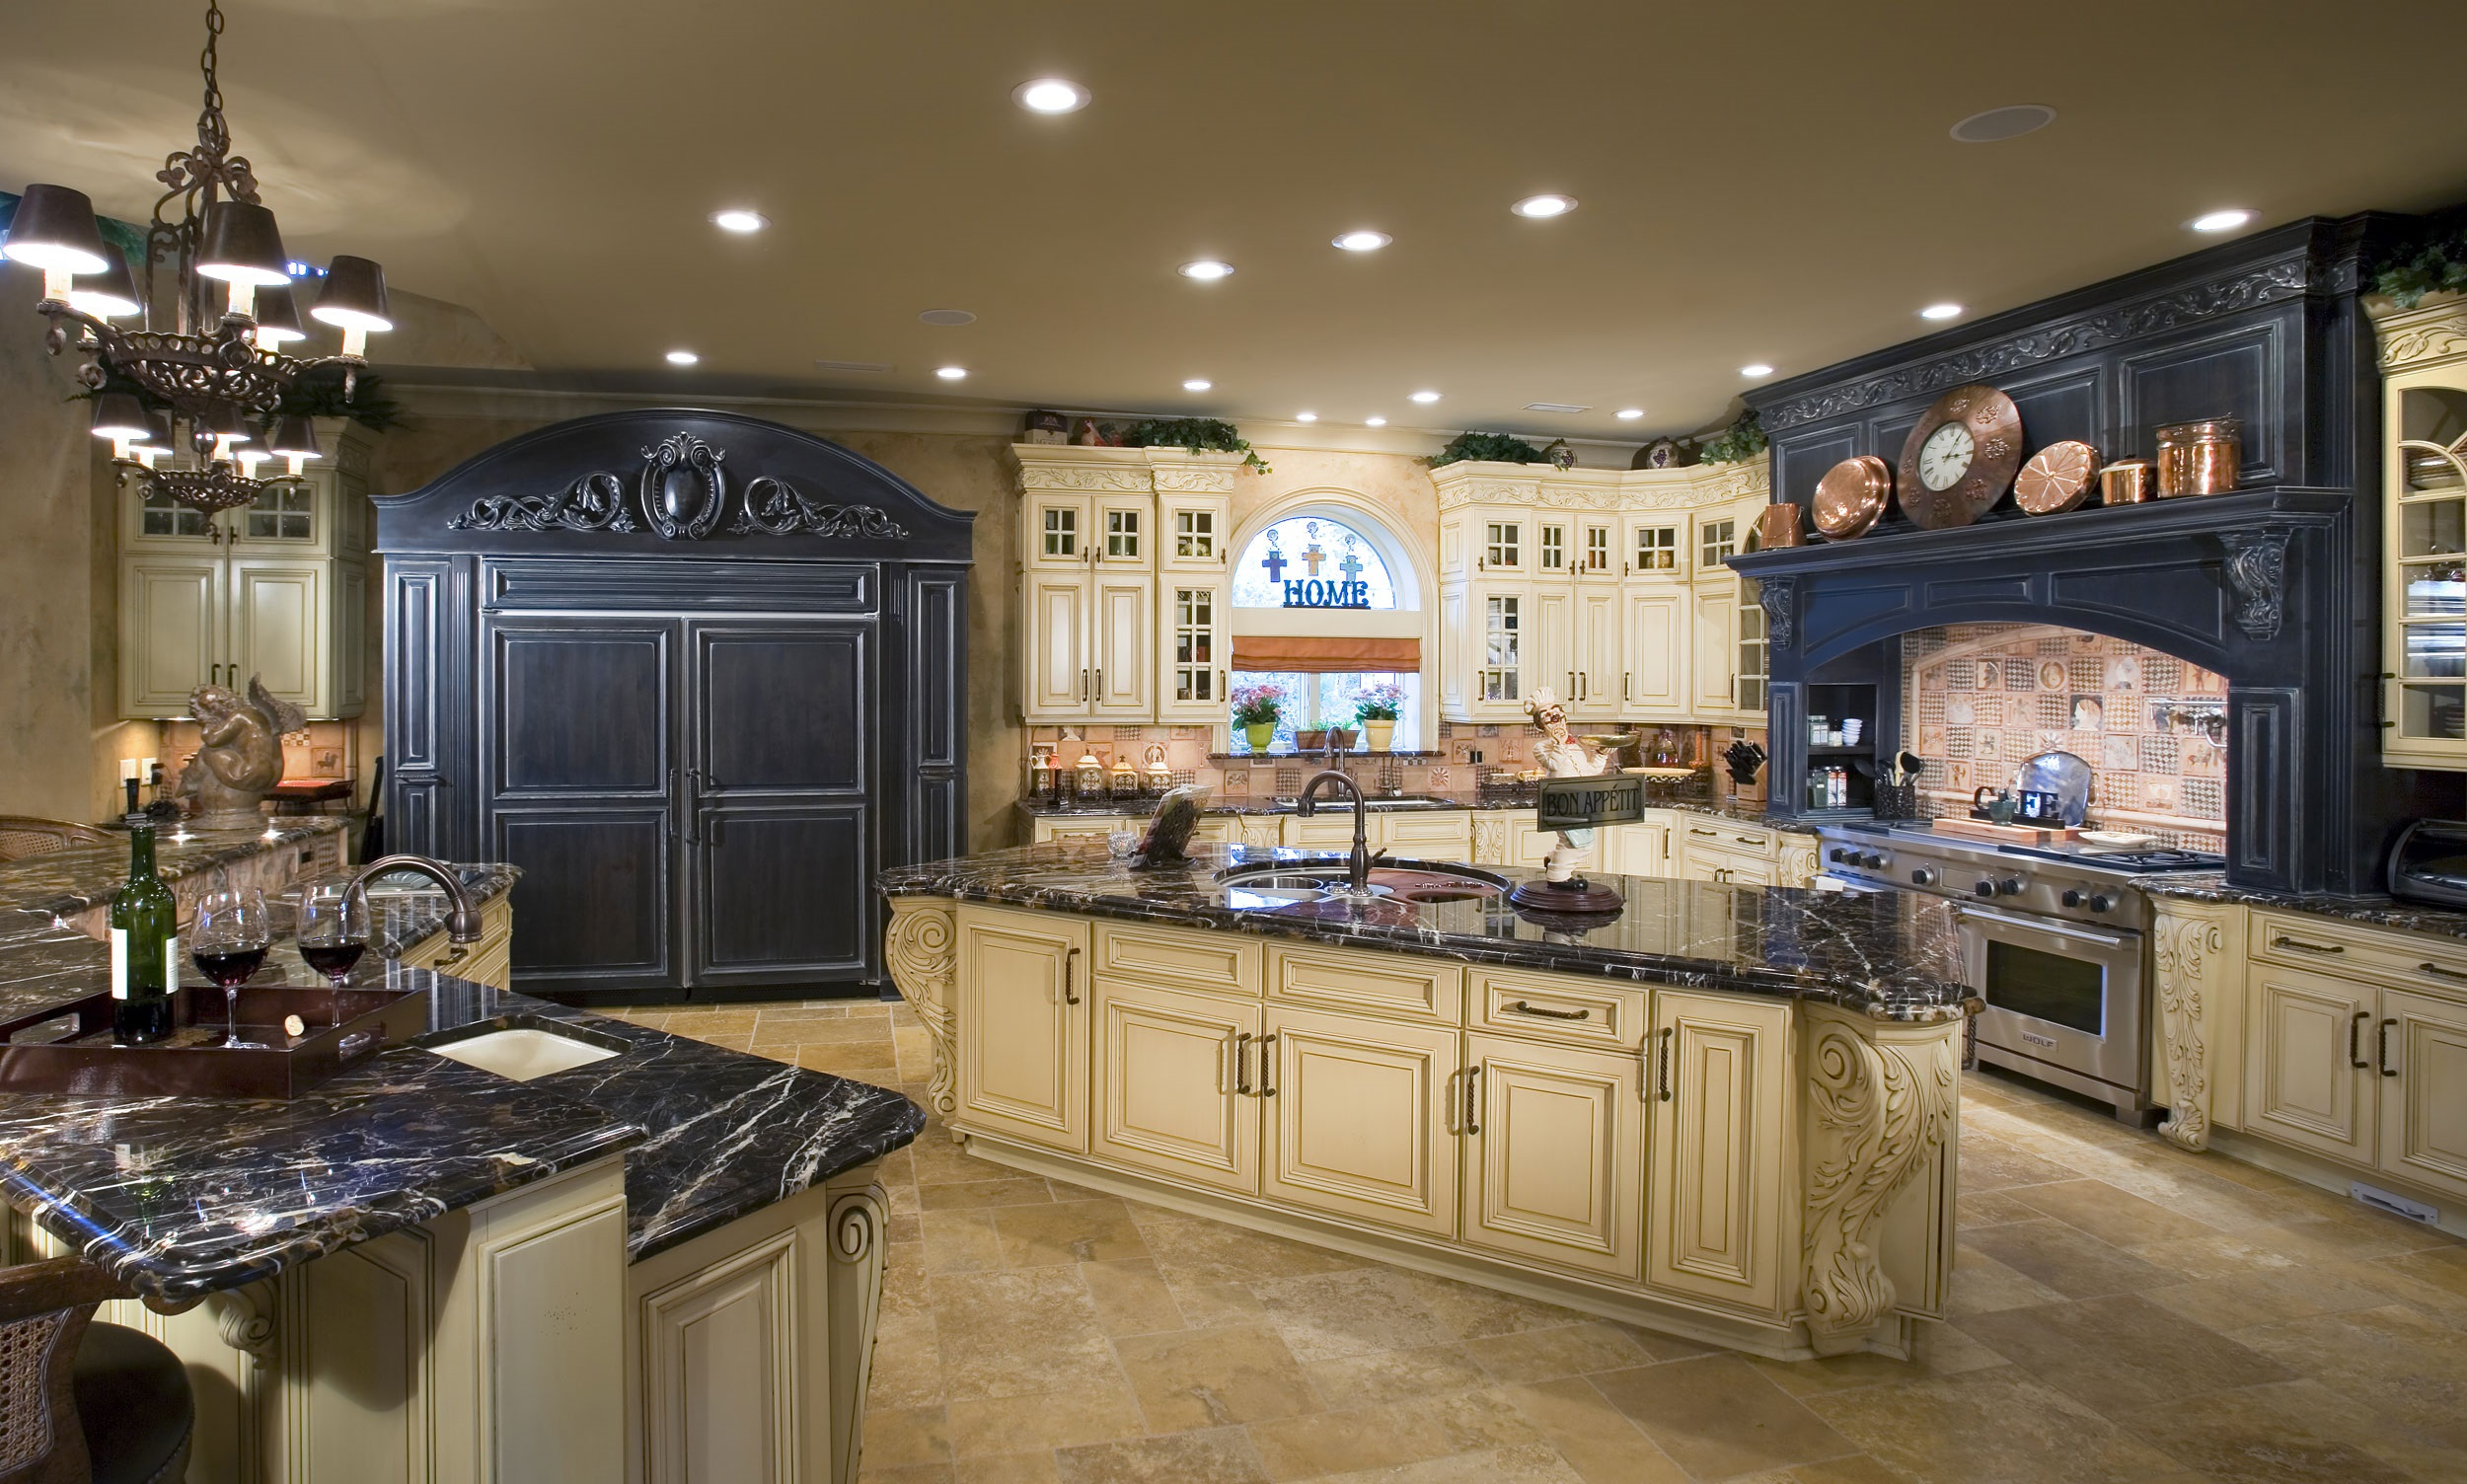 pictures for the kitchen how to make your own cabinets 5 things every design needs appeal home